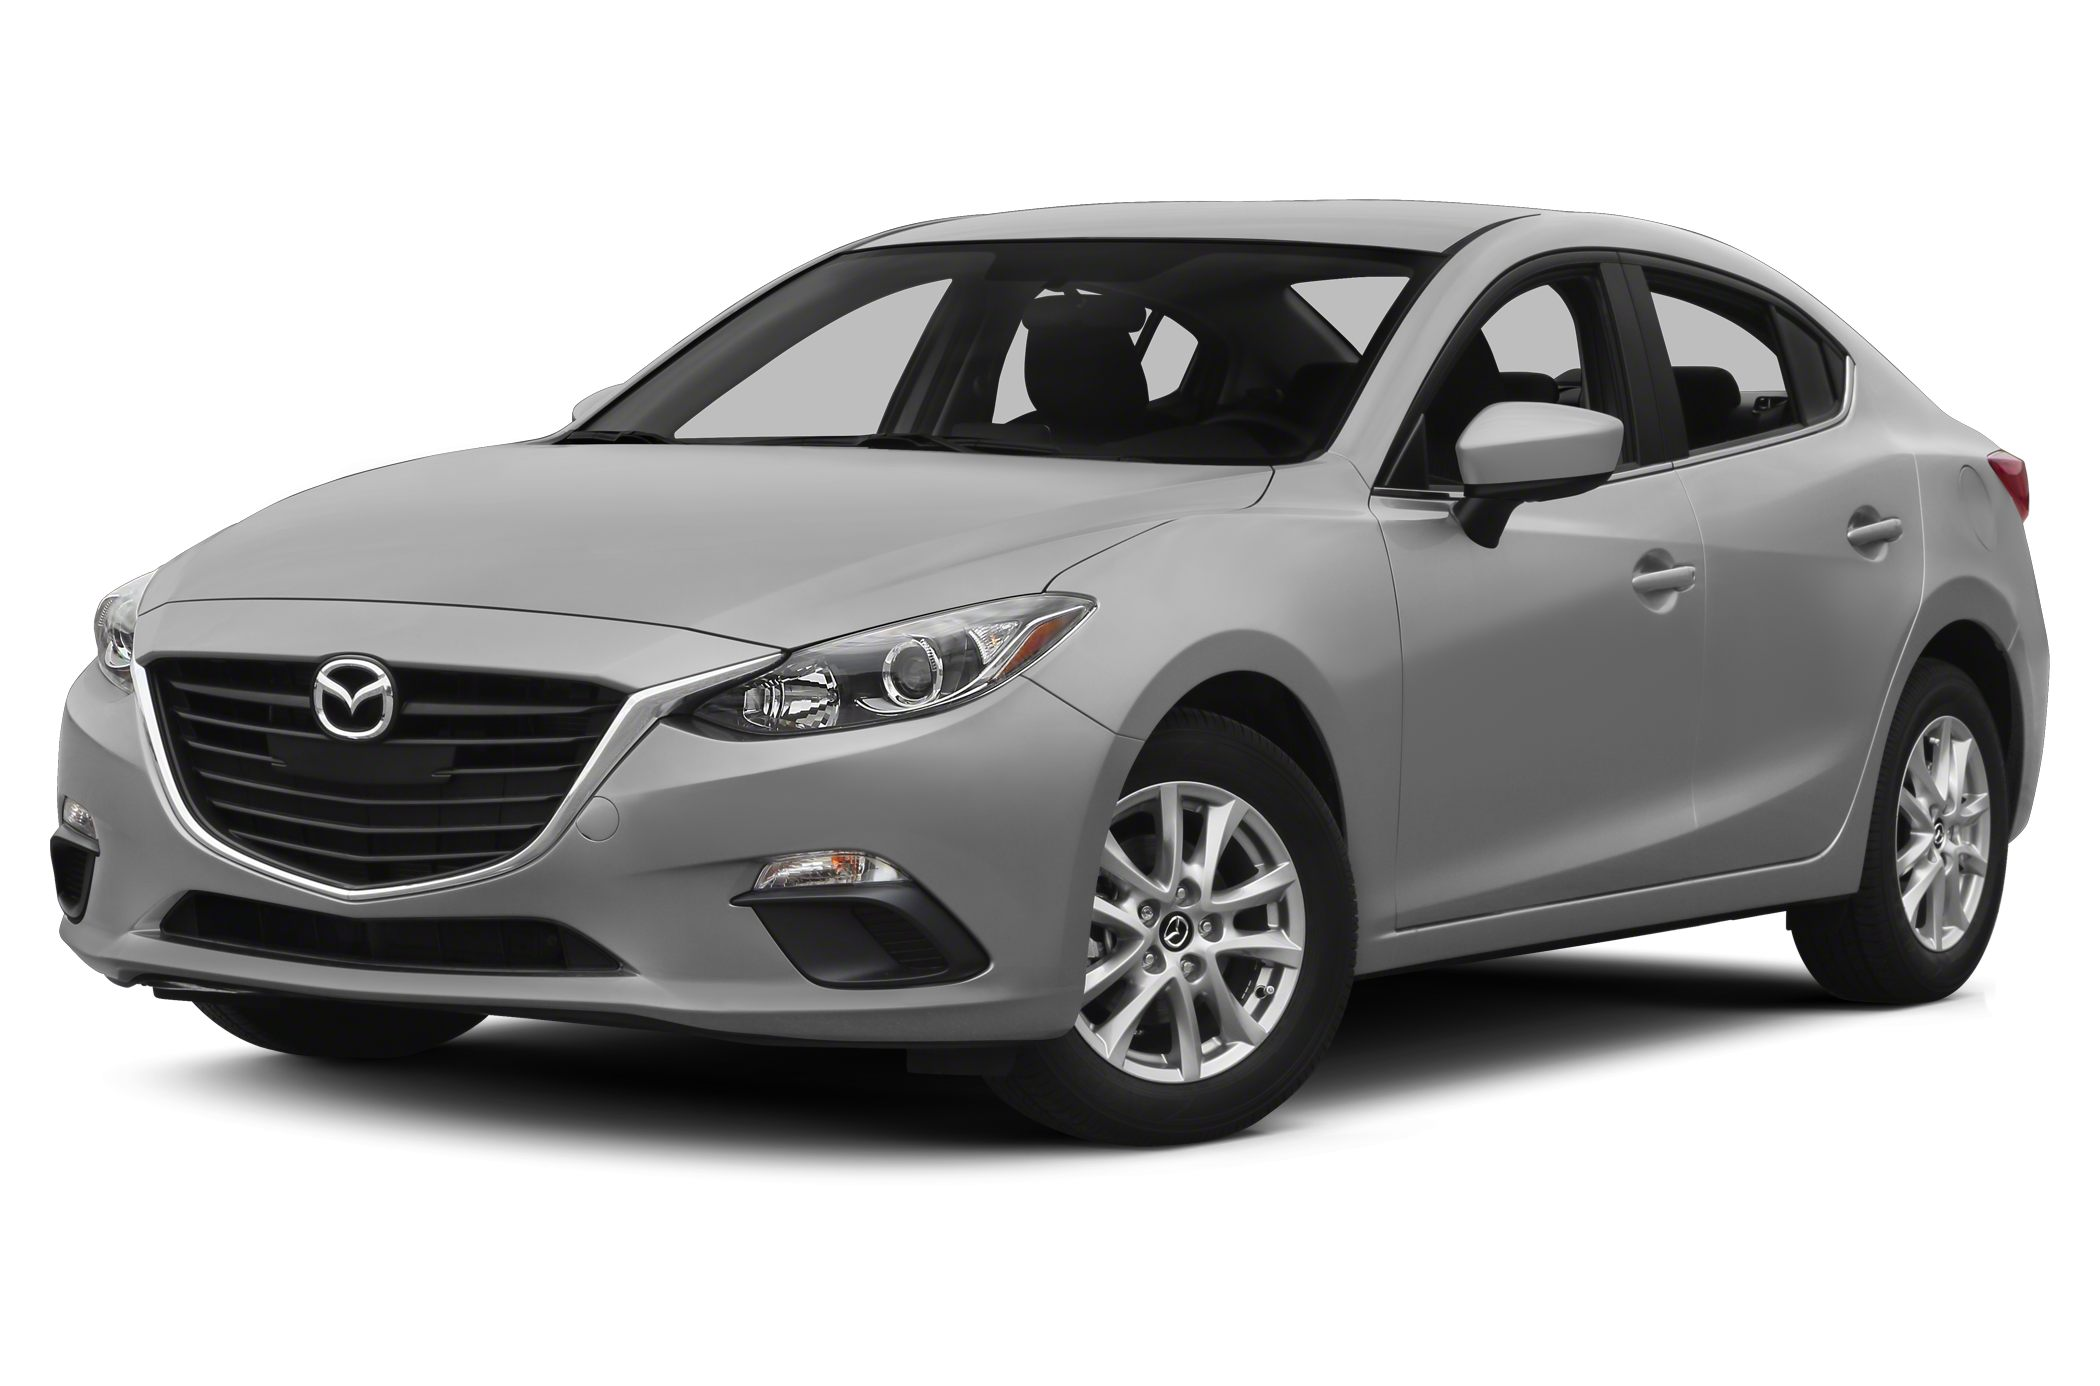 2015 Mazda Mazda3 I Sport Sedan for sale in Mentor for $20,490 with 0 miles.